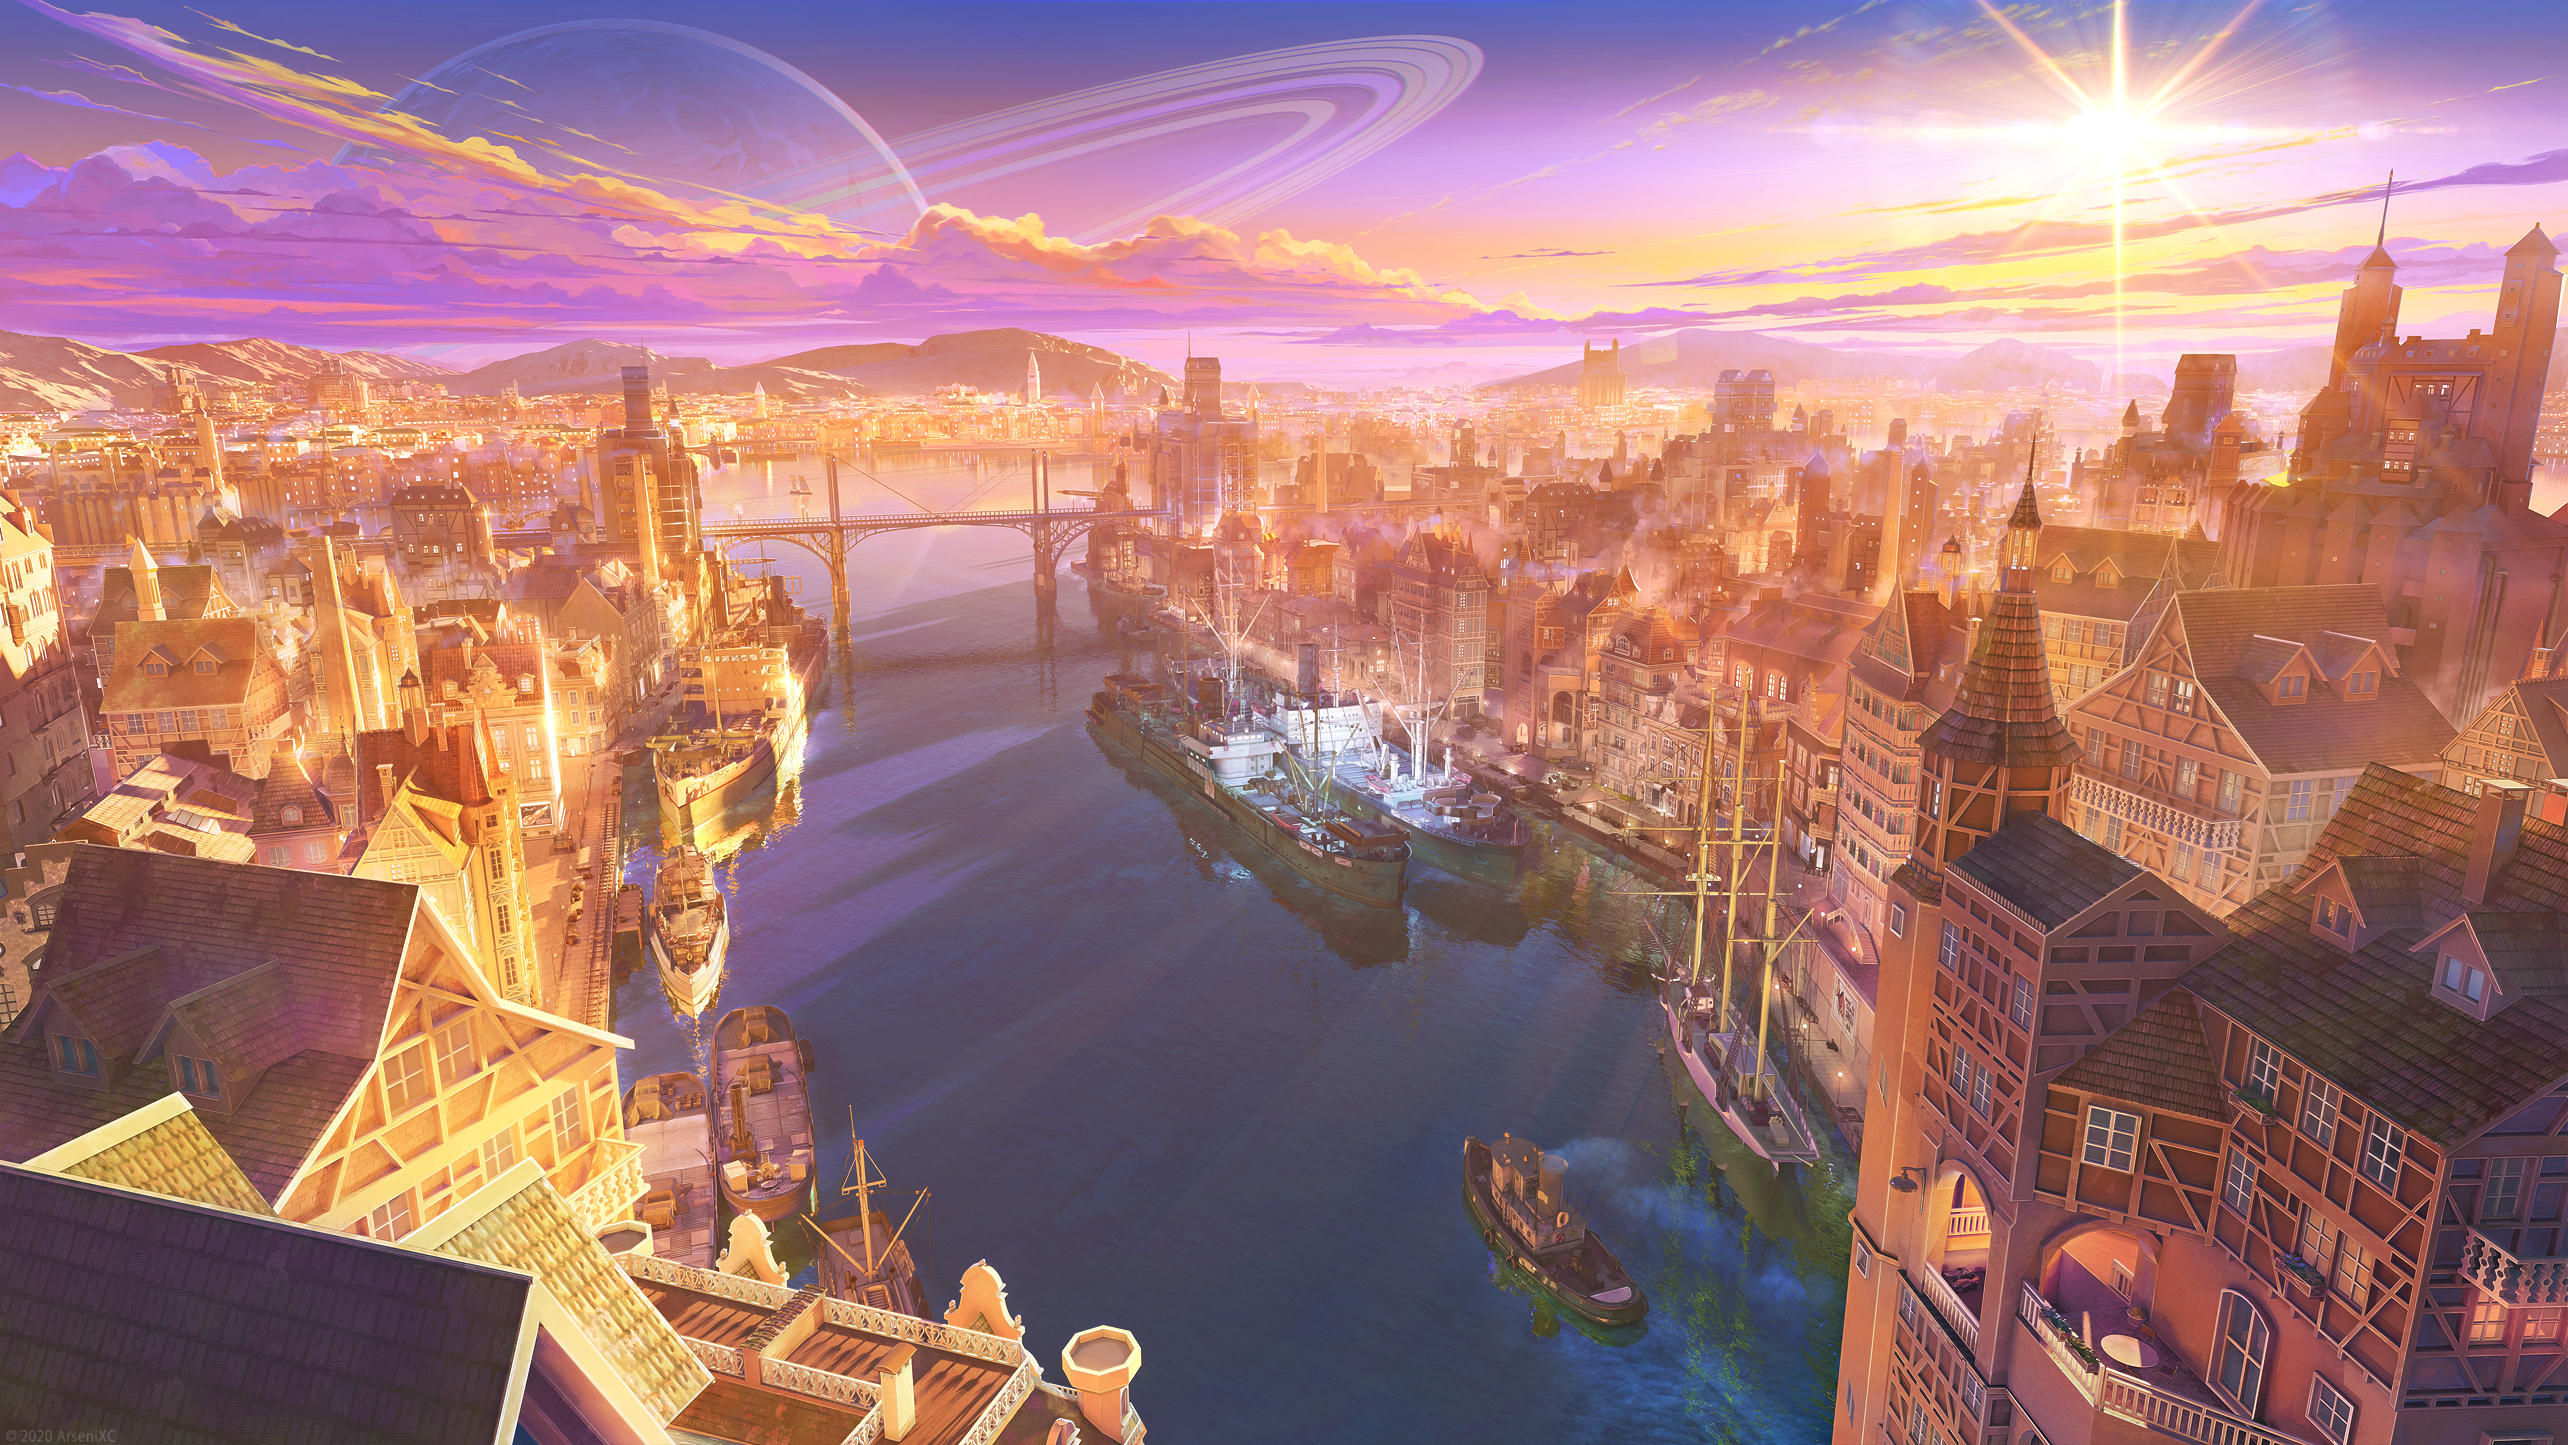 General 2568x1445 ArseniXC digital art river bridge boat planet sunrise cityscape